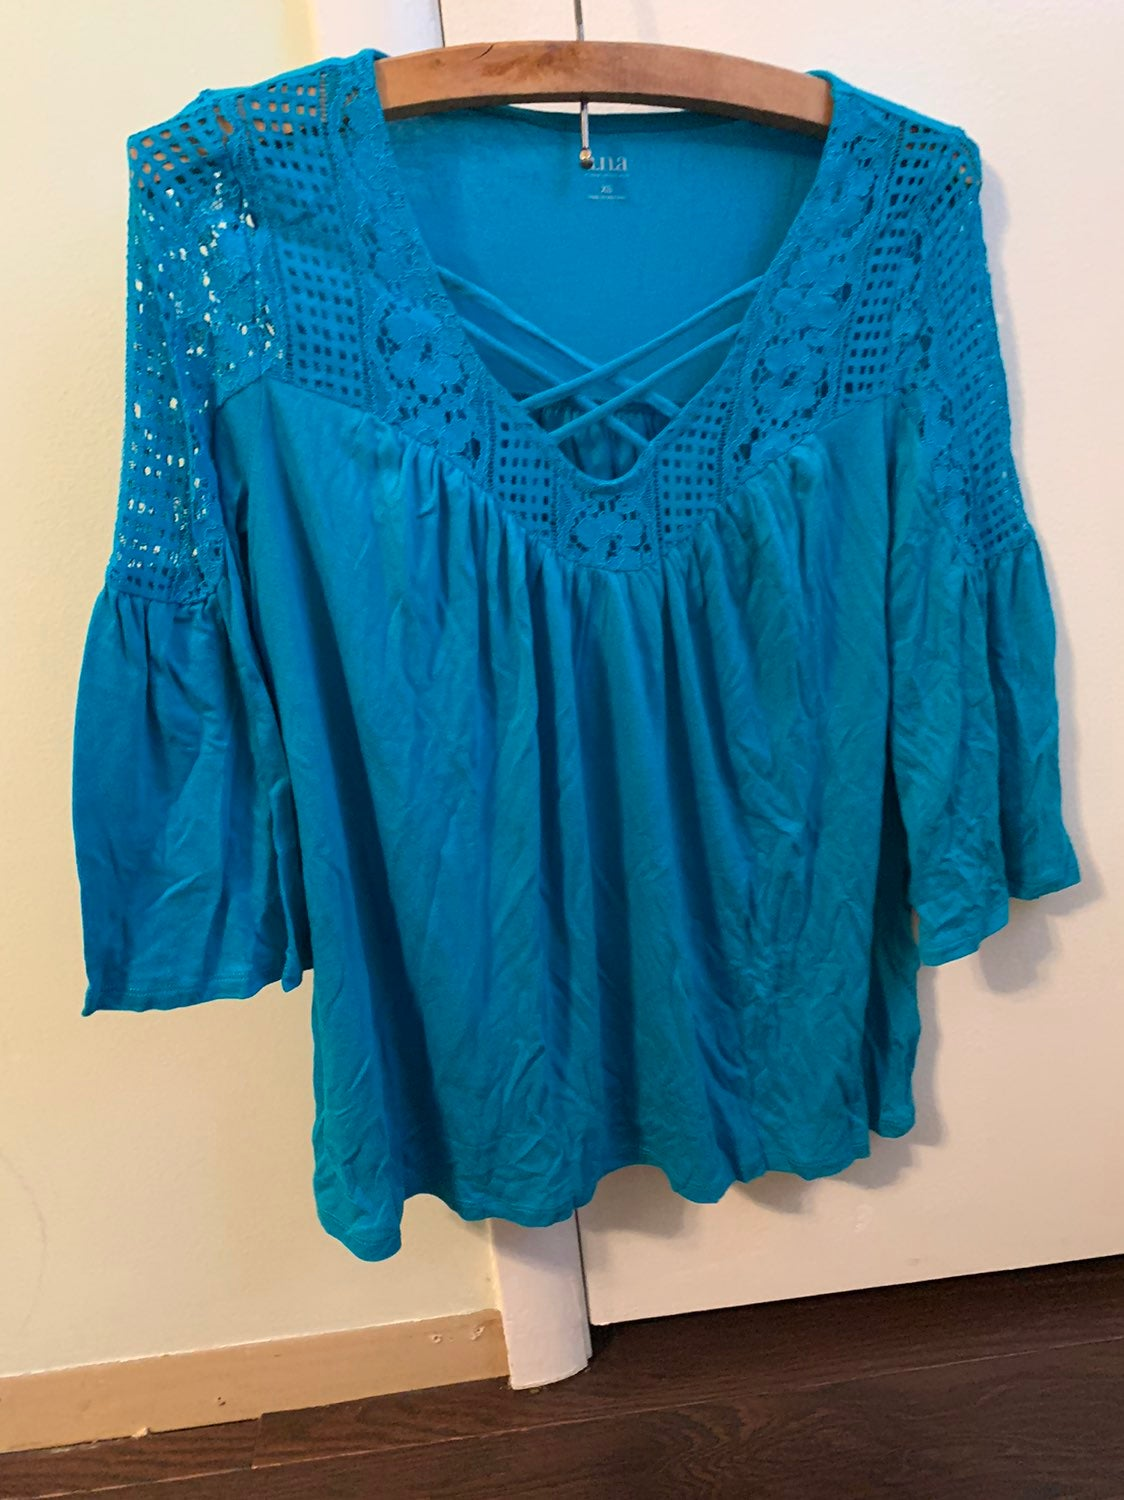 Blue A.n.a. Embroidered blouse with flar